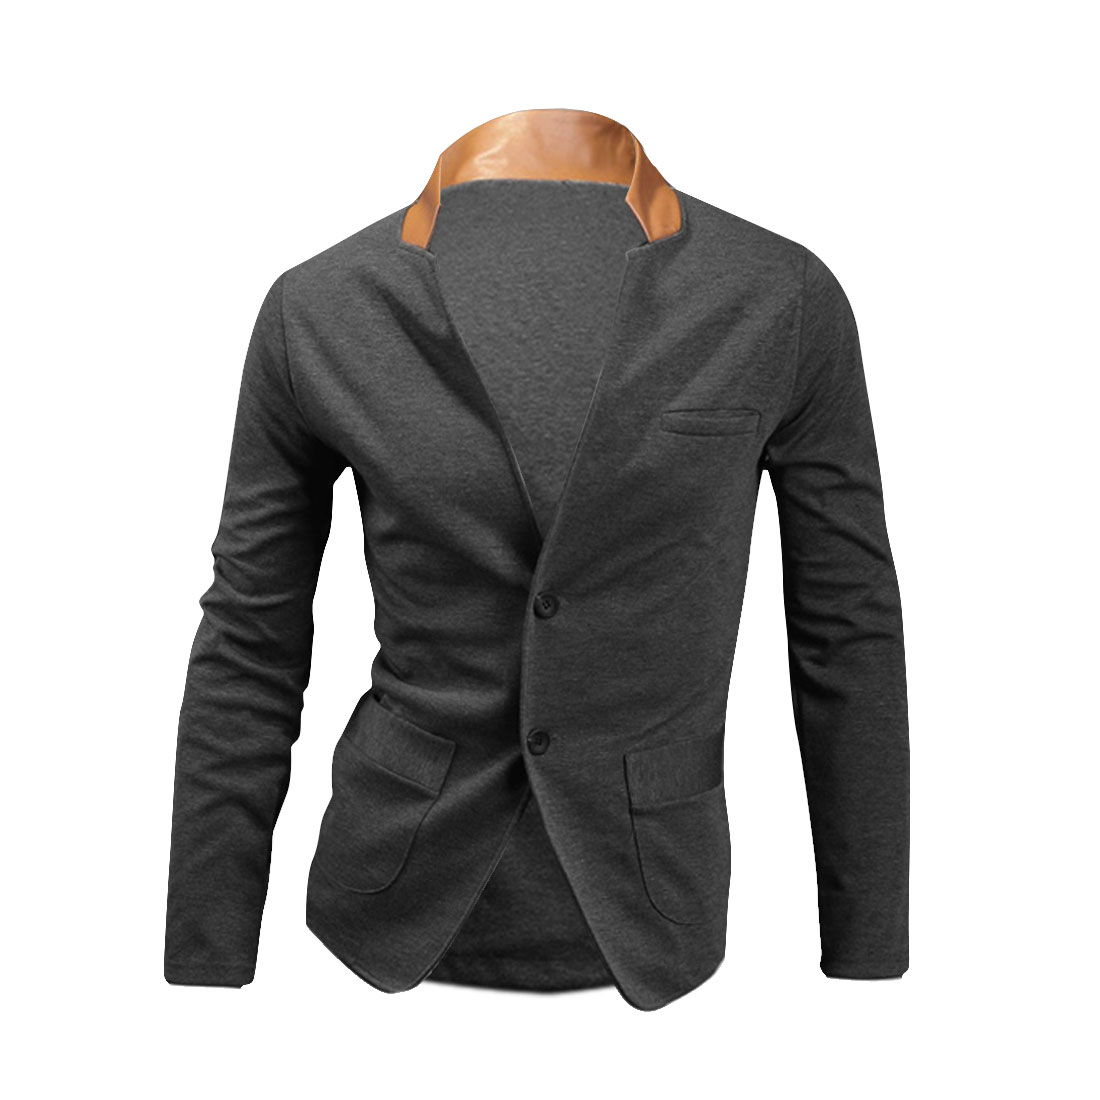 Mens NEW Contrast Color Faux Leather Stand Collar Dark Gray Spring Shirt M